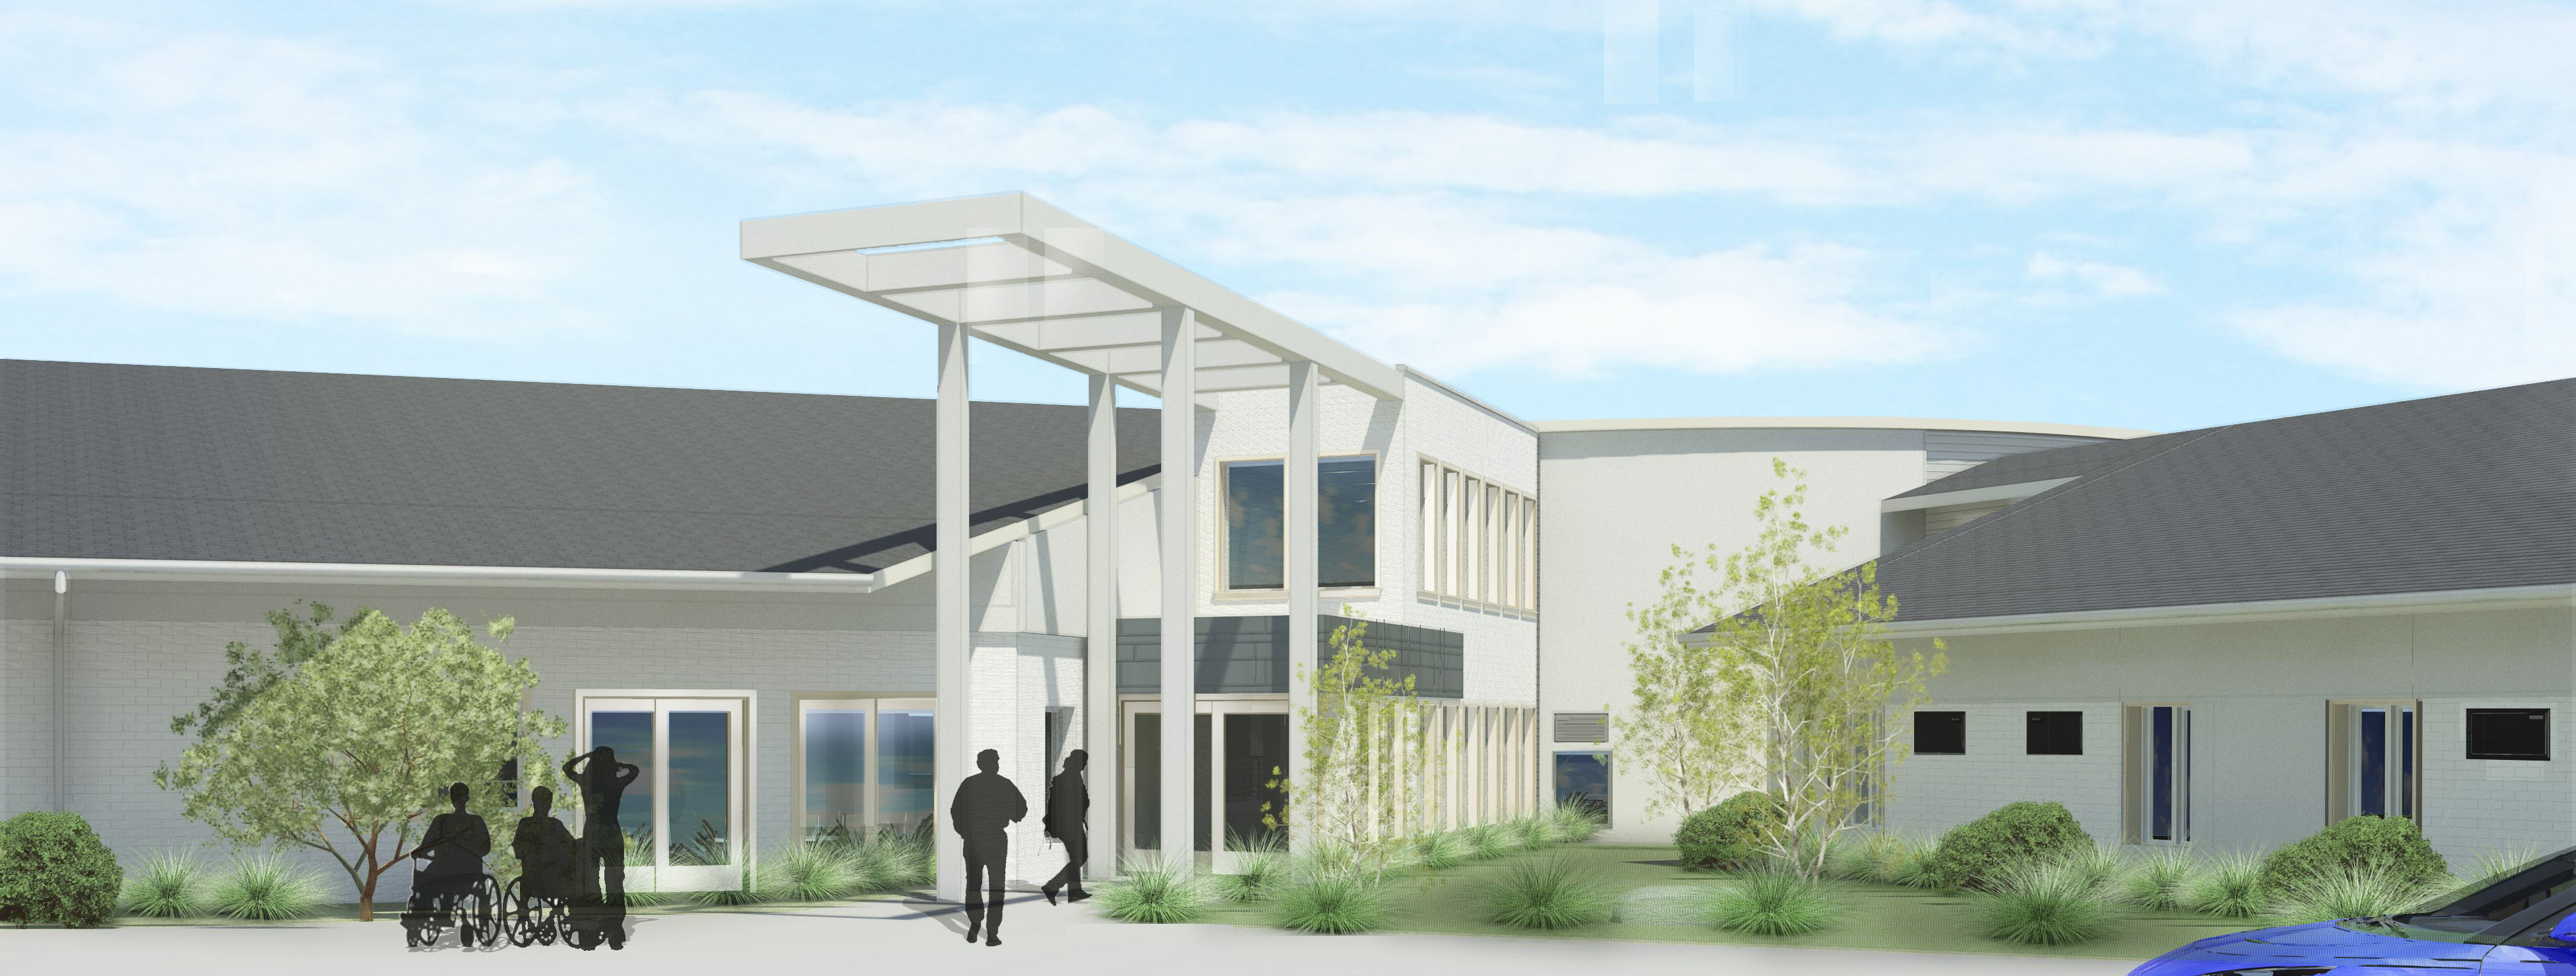 FitzGerald Selected for Three Supportive Living & Rehabilitation Facility Renovations